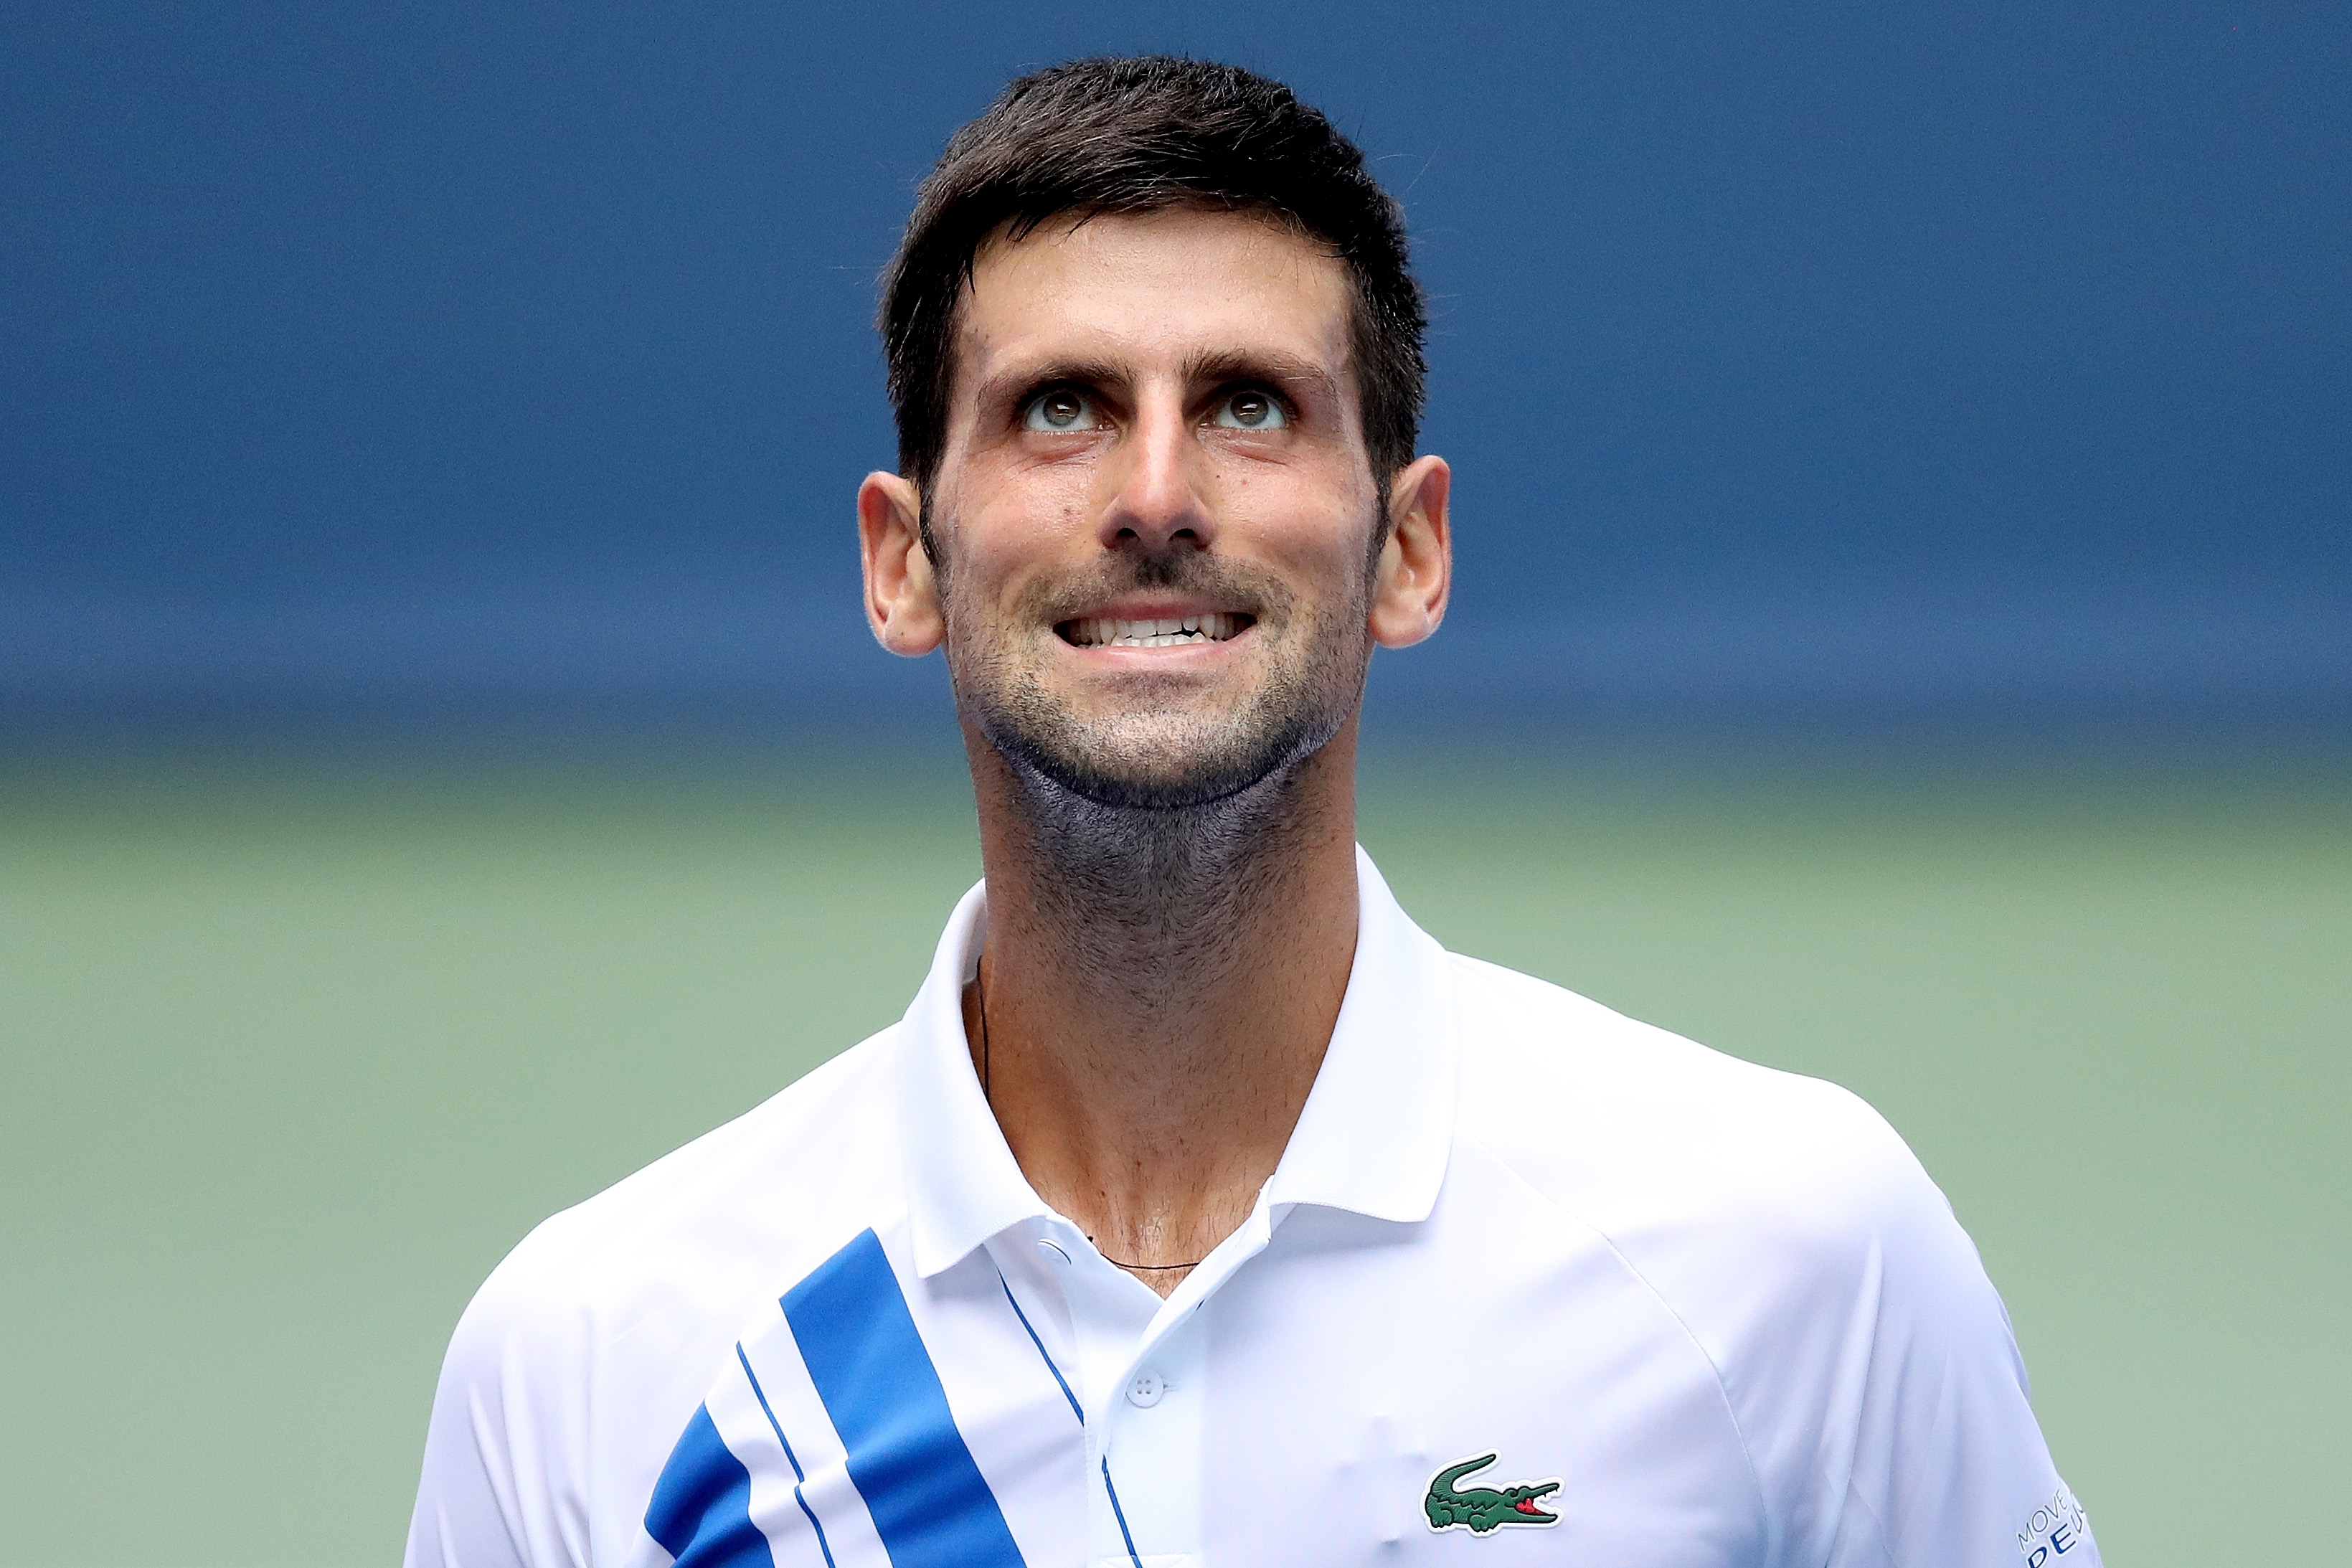 Novak Djokovic is 'in pain' after US Open incident, says former coach